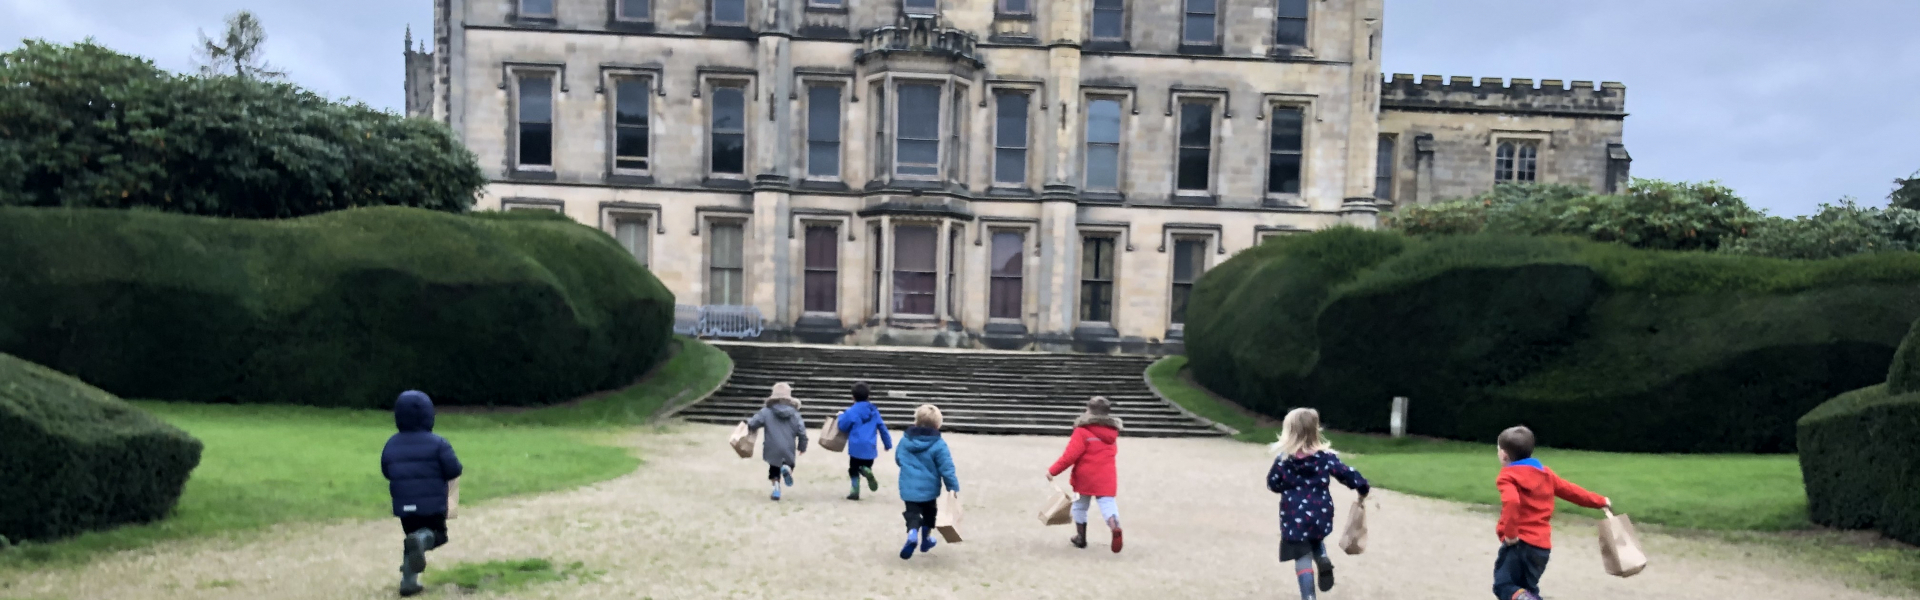 EYFS at Elvaston Castle